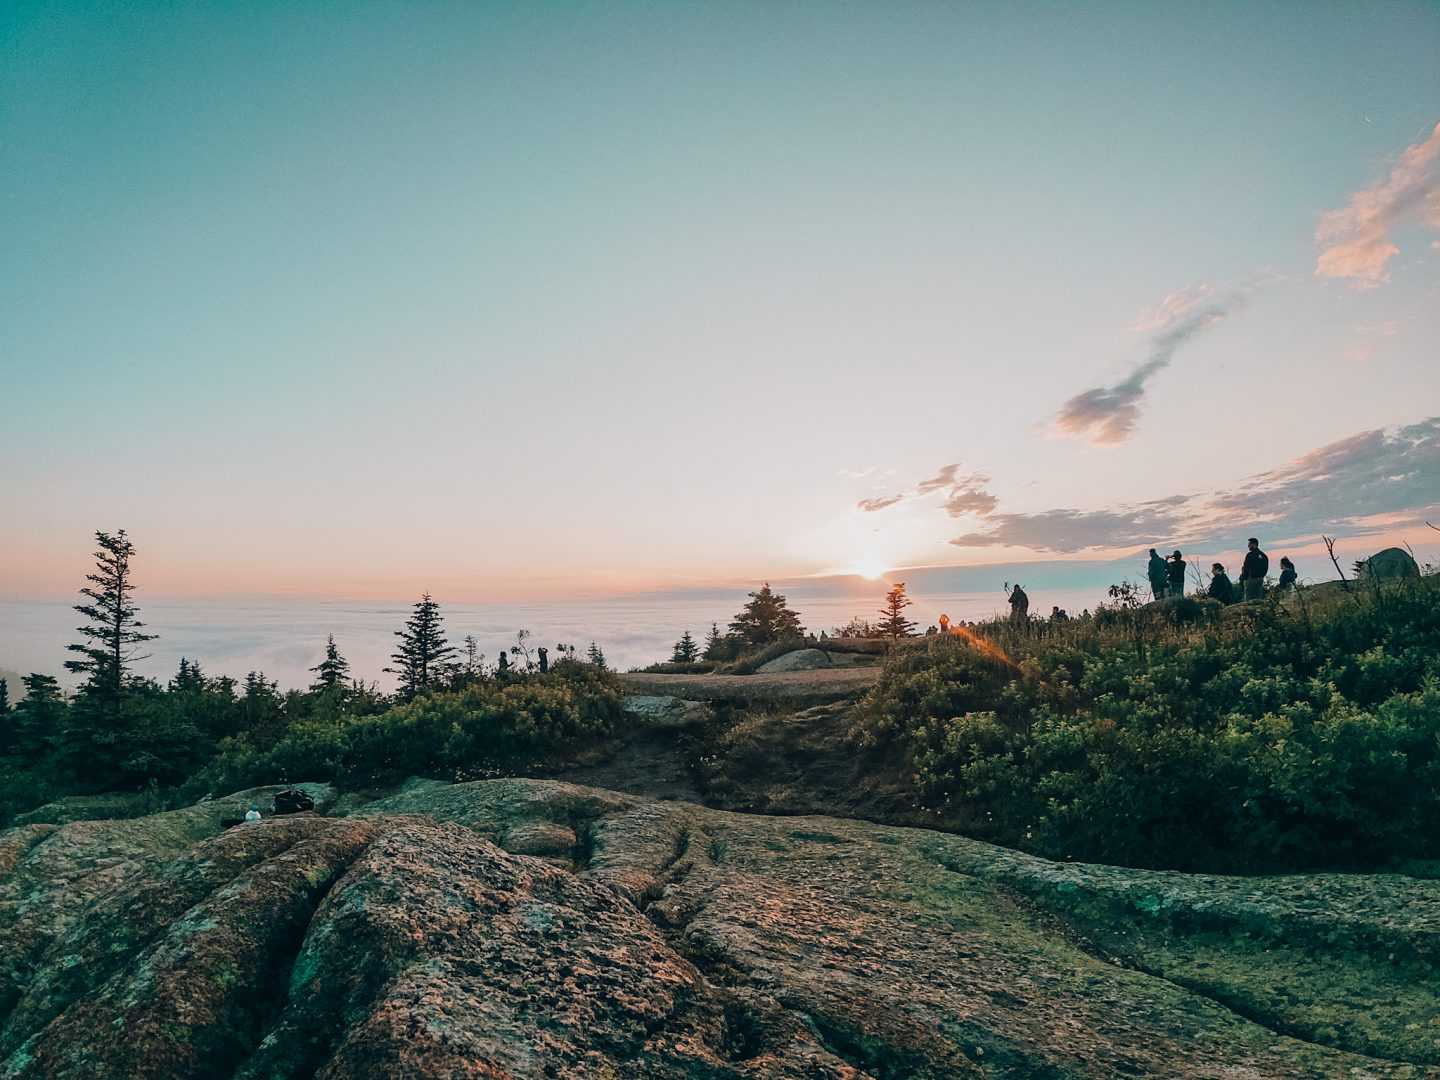 Sunrise from the top of Cadillac Mountain in Acadia National Park, Maine